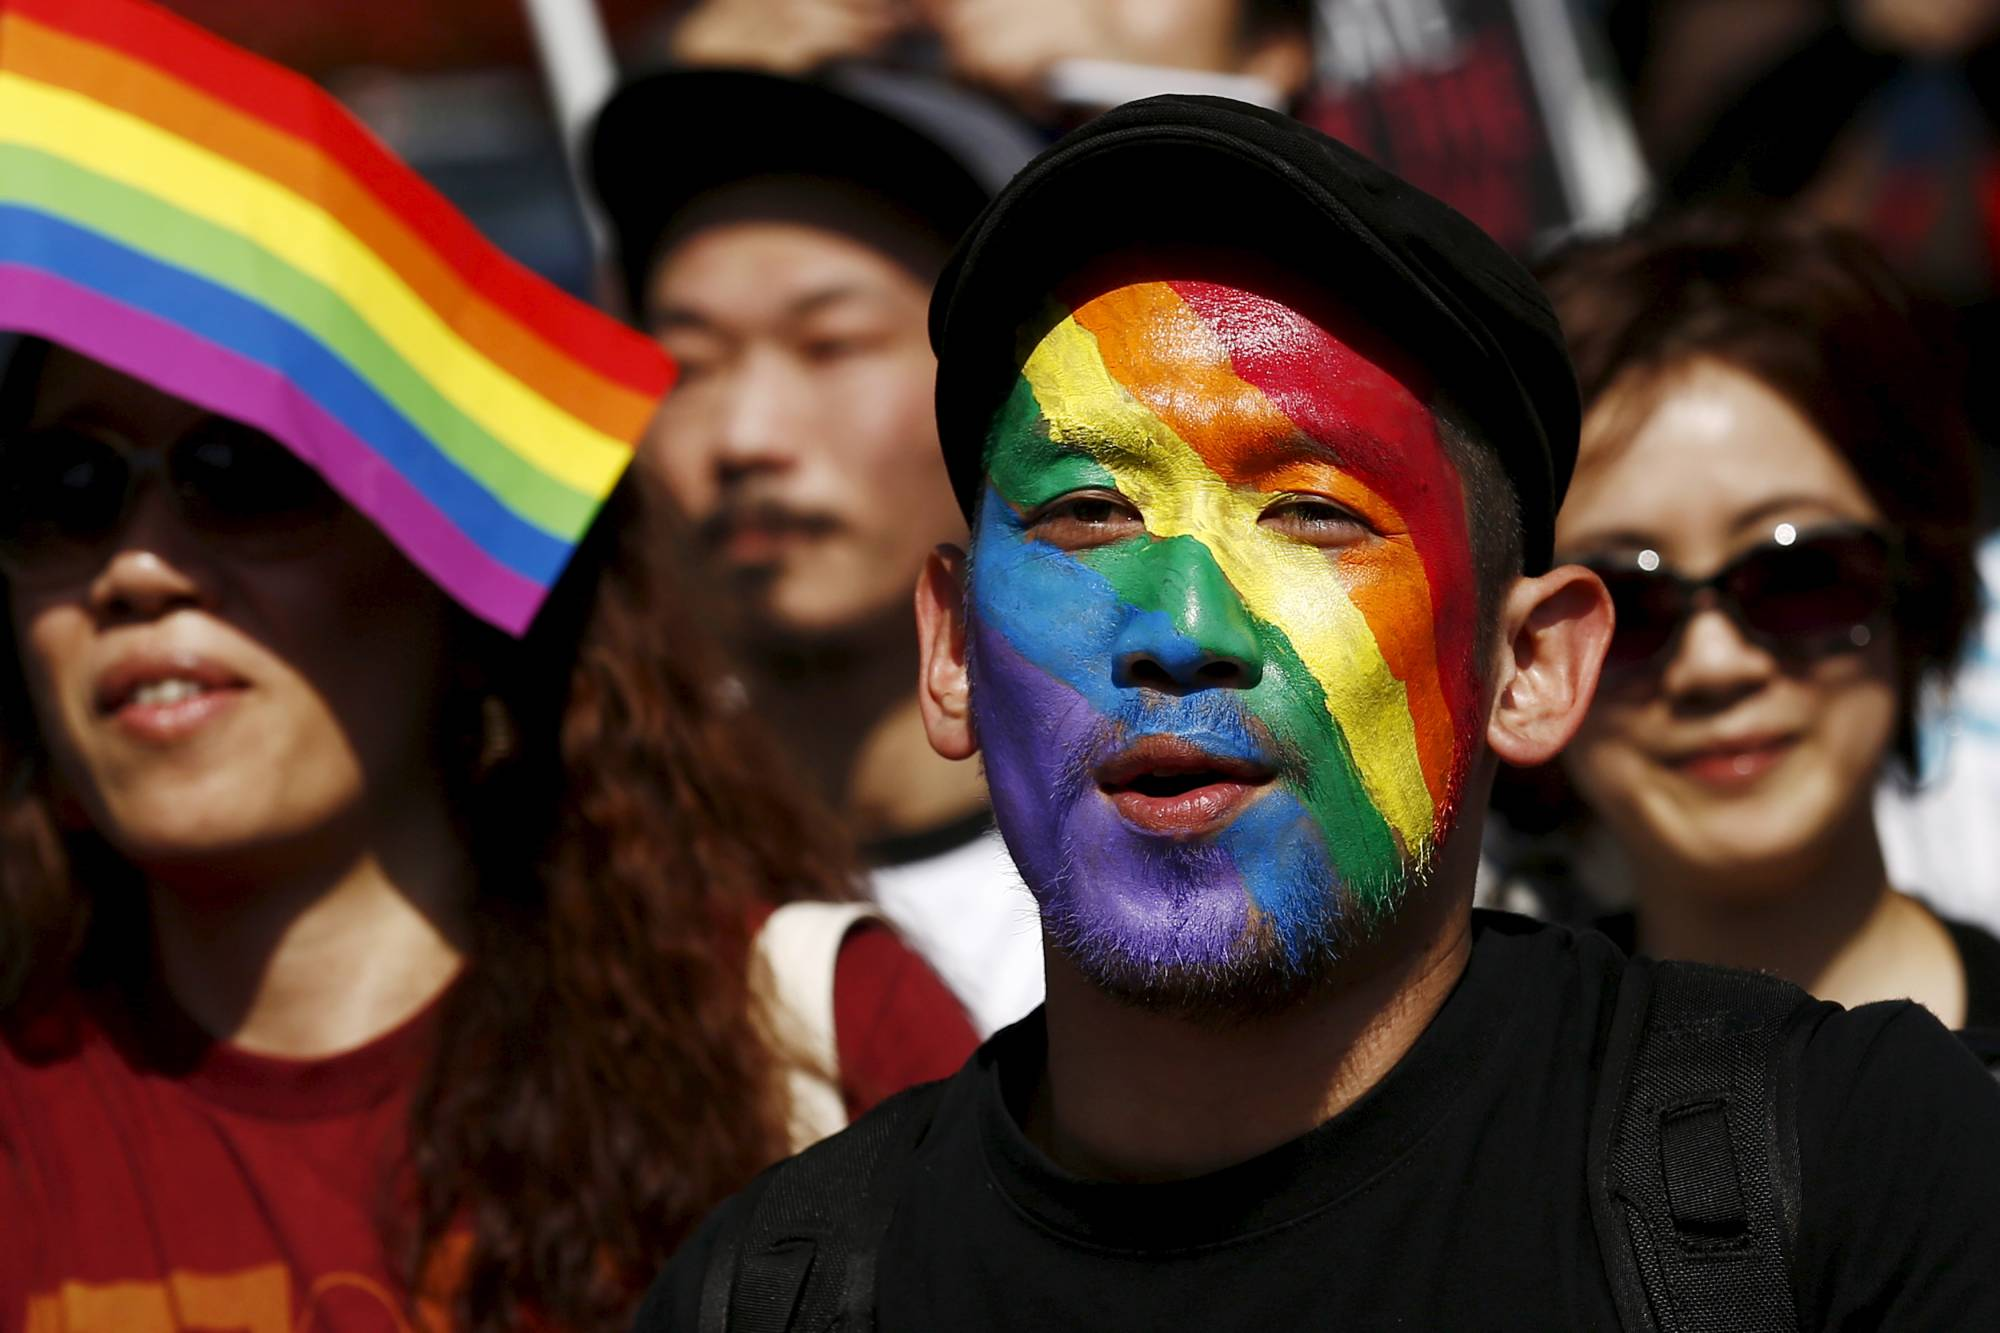 Members of the LGBTQ community and their supporters participate in the Tokyo Rainbow Pride parade in April 2015.     REUTERS